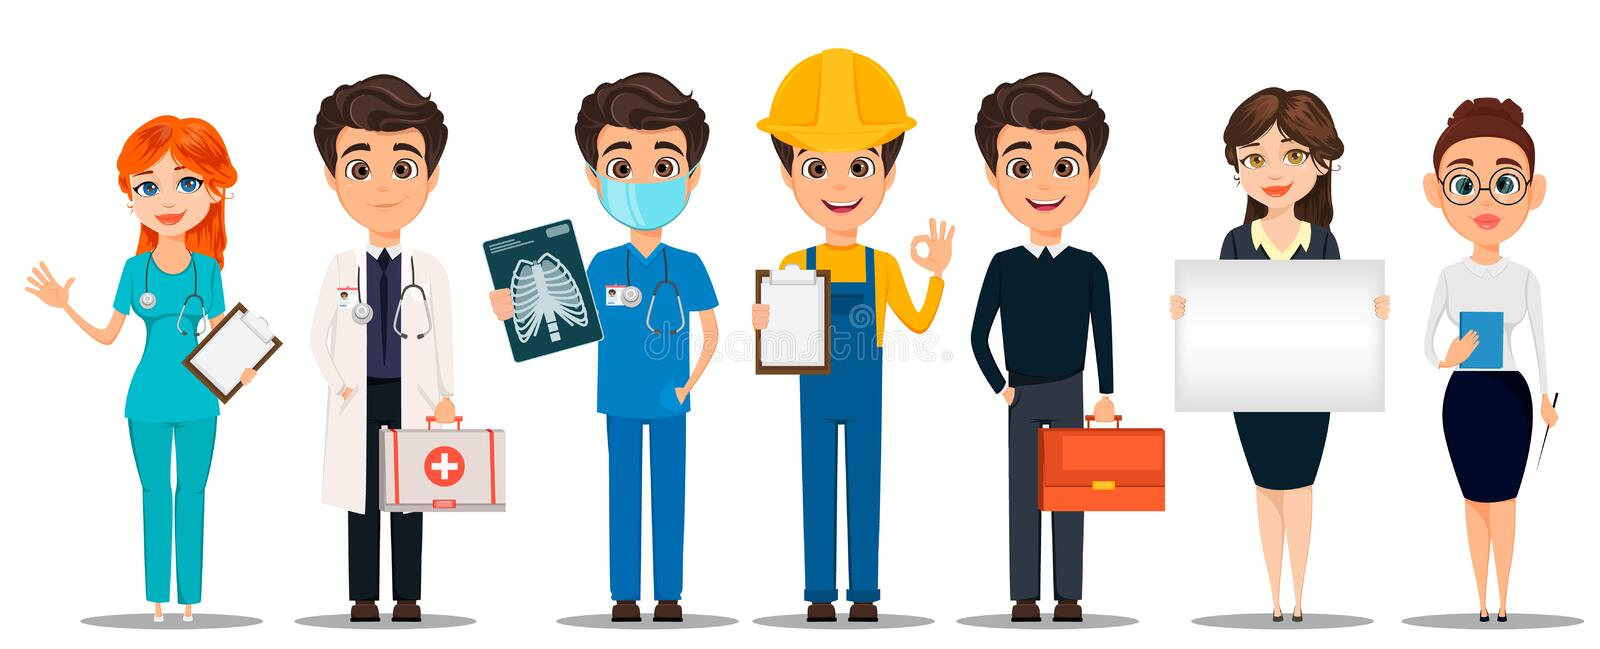 Professions. Set of cartoon characters. Doctors, builder, business man, business woman and teacher. Vector illustration vector illustration